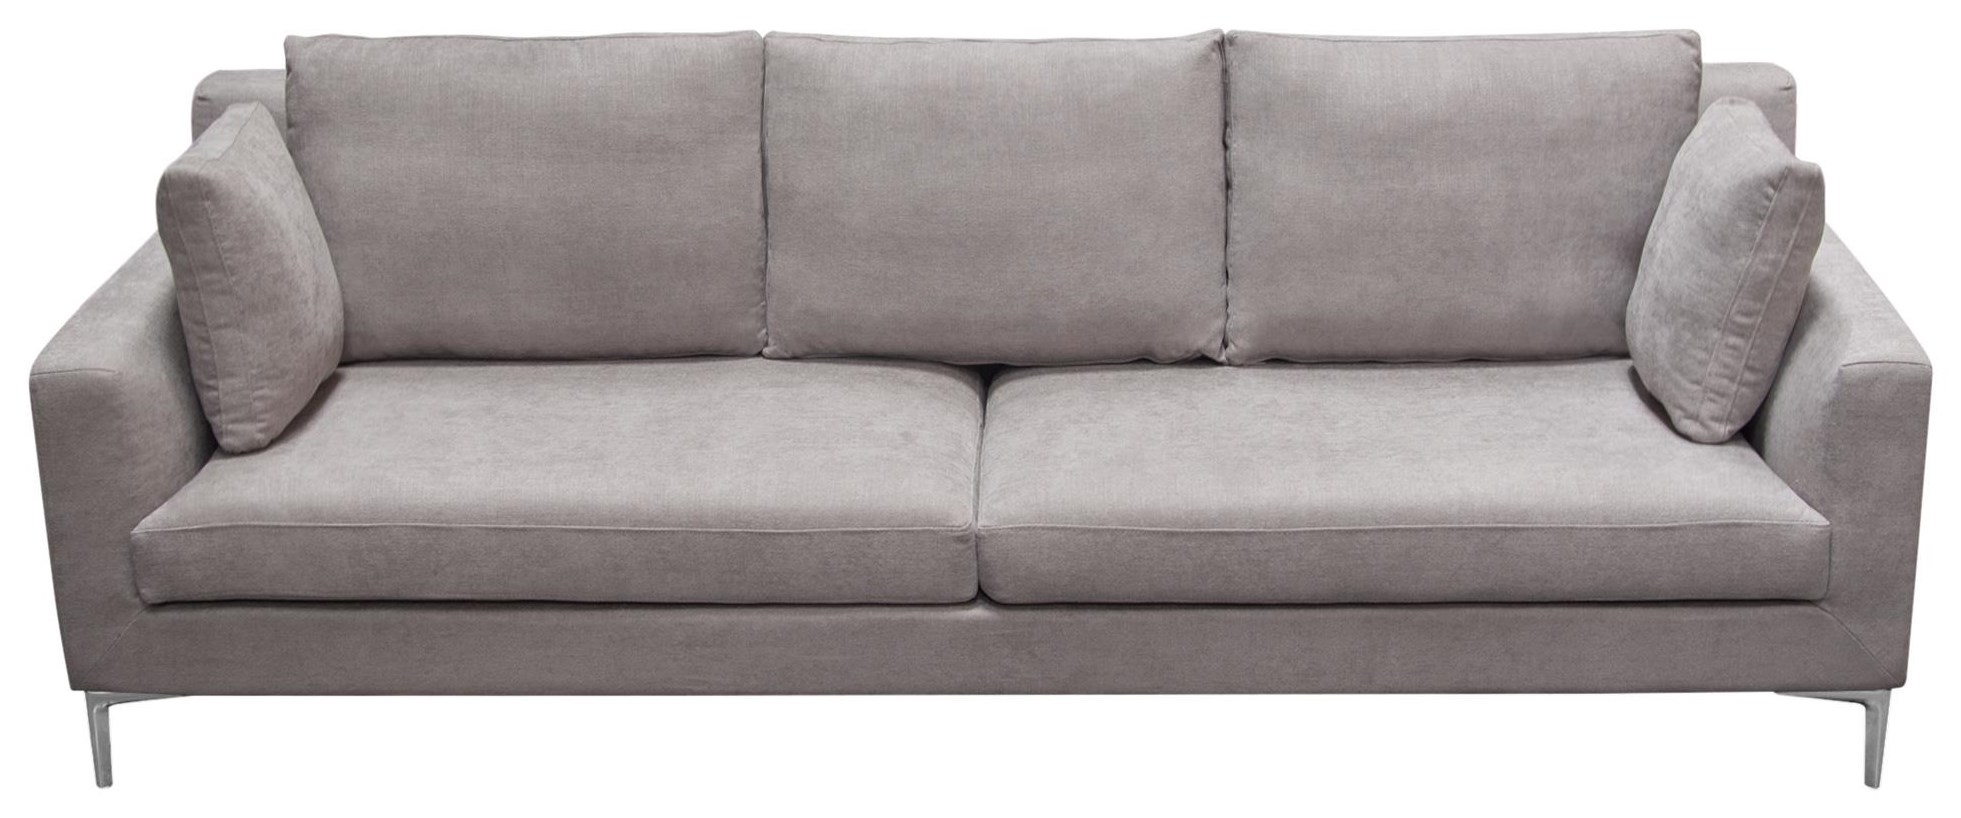 Seattle Sofa by Diamond Sofa at Red Knot